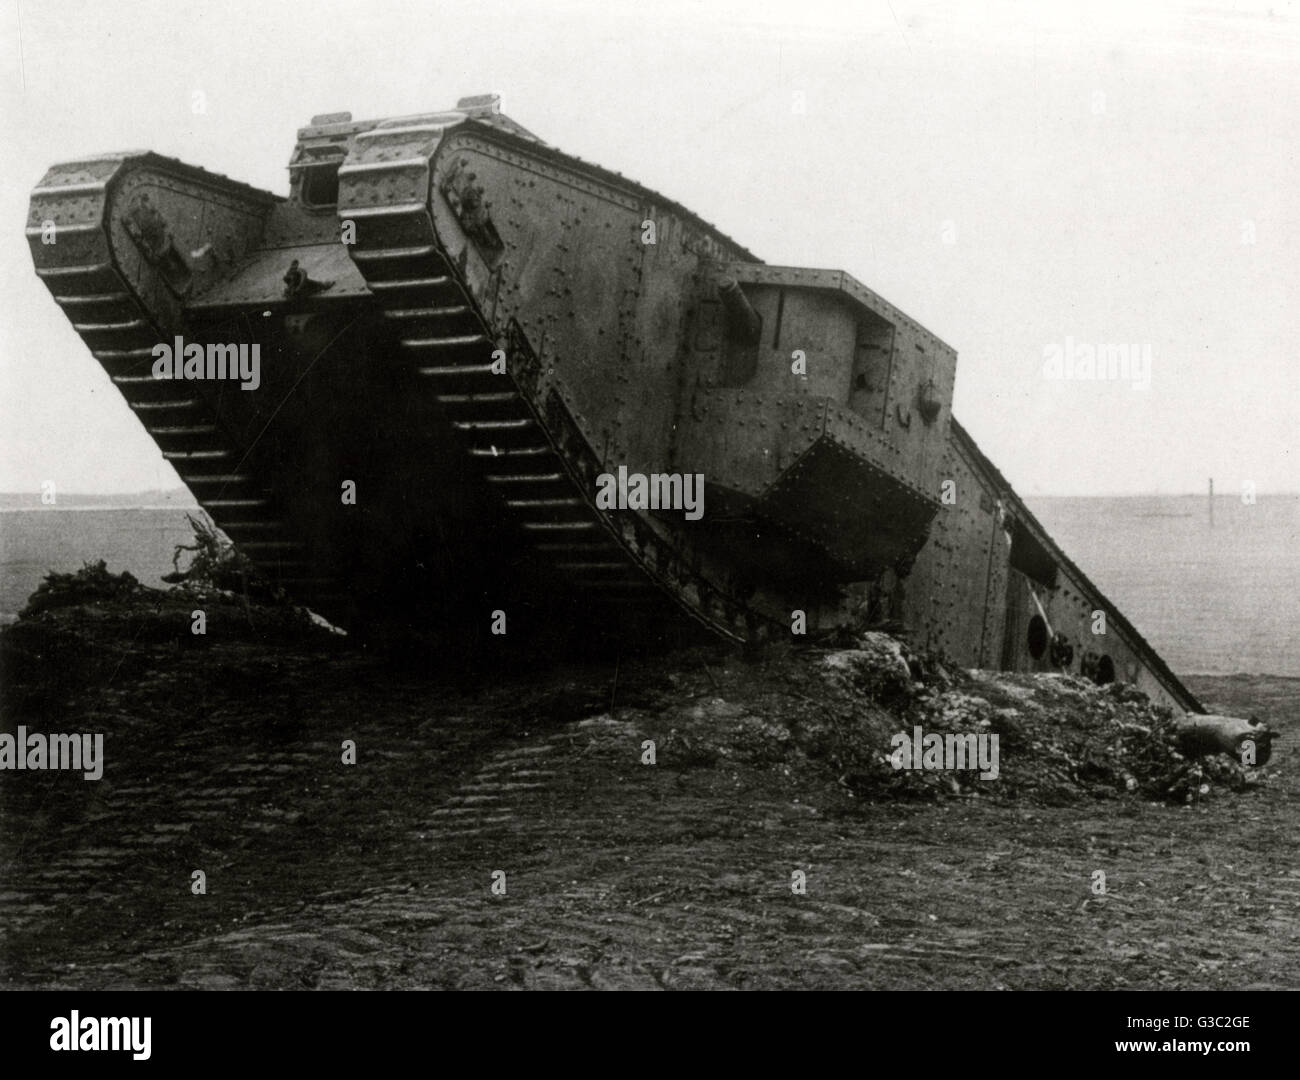 WW1 - British Mark IV tank, also known as the 'Tadpole'. The Mark IV was first used in mid 1917 at the Battle - Stock Image